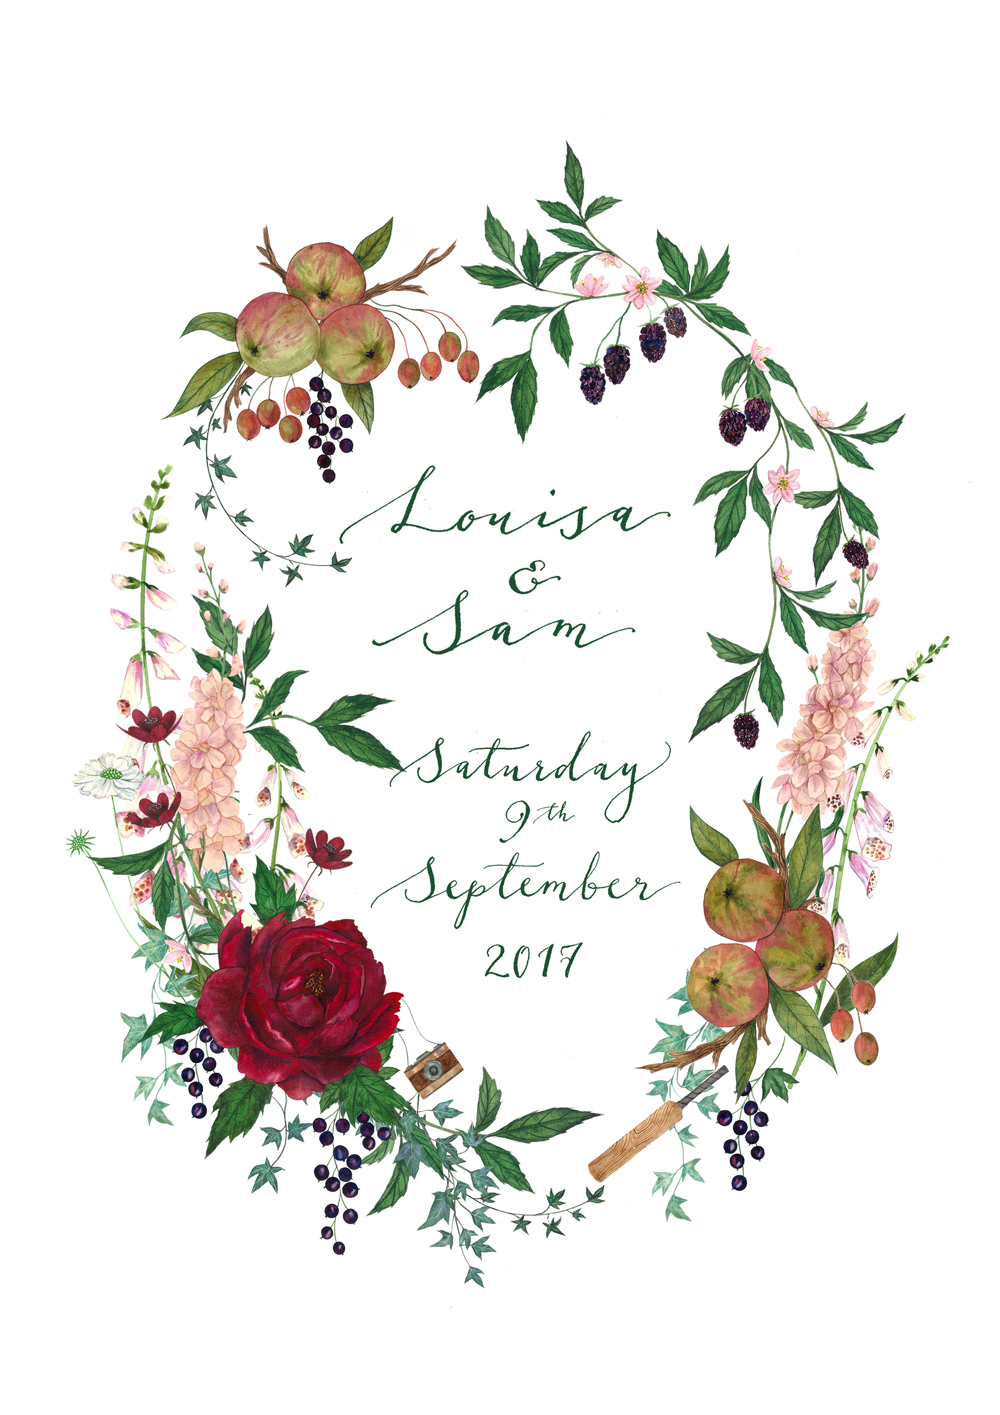 Louisa-Wreath-Callig.jpg